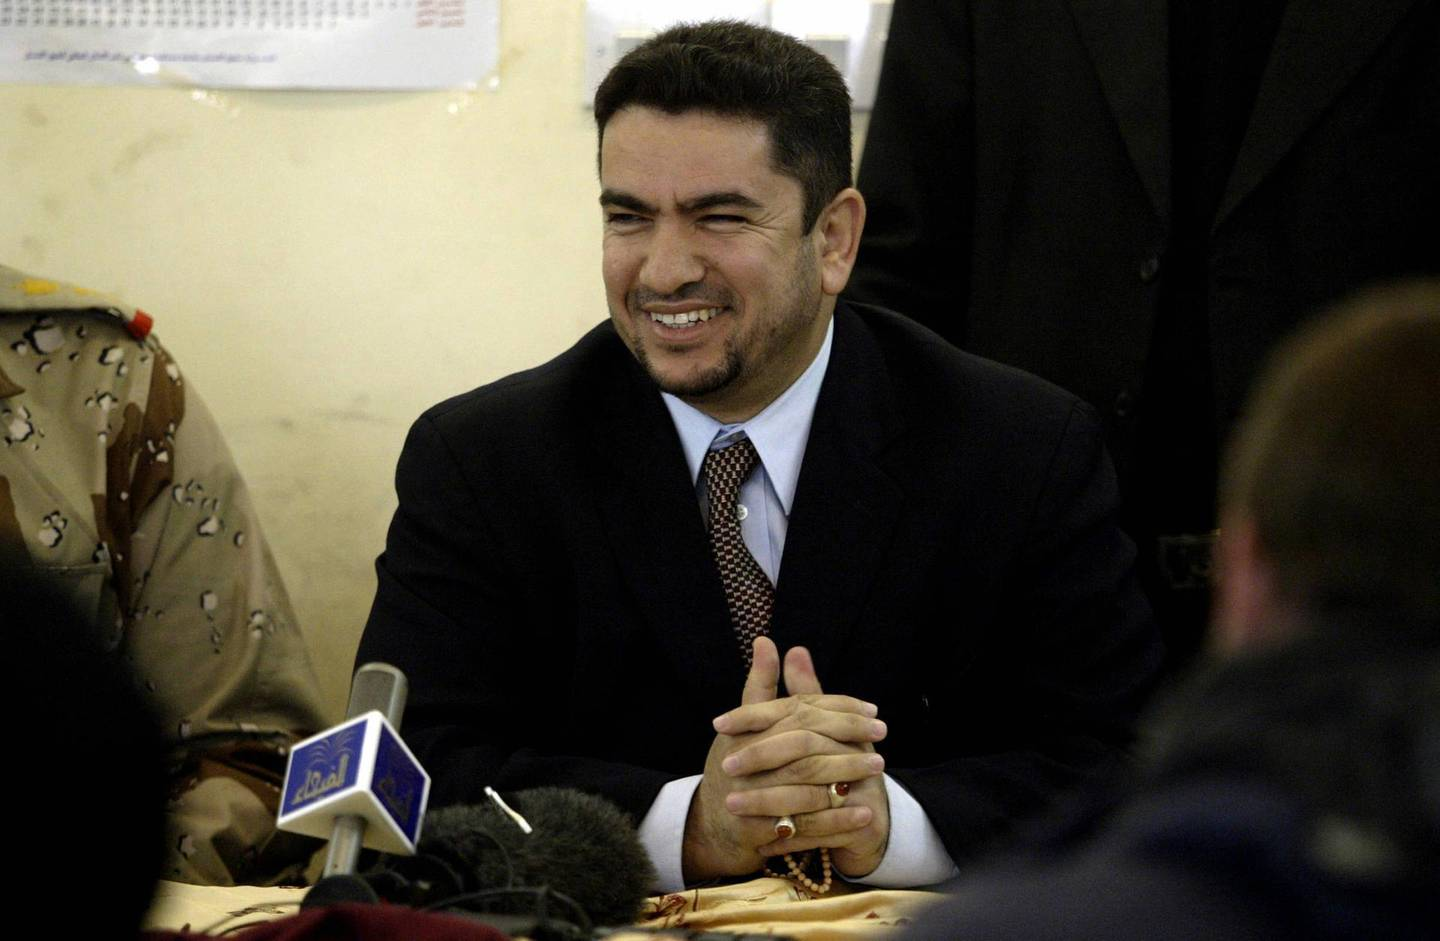 (FILES) In this file photo taken on January 25, 2005 Adnan al-Zurfi, former governor of Najaf, speaks to press at the Human Right Center in Baghdad.  Iraq president names ex-Najaf governor Adnan Zurfi as premier, according to state TV.  / AFP / AFP POOL / MARWAN NAAMANI